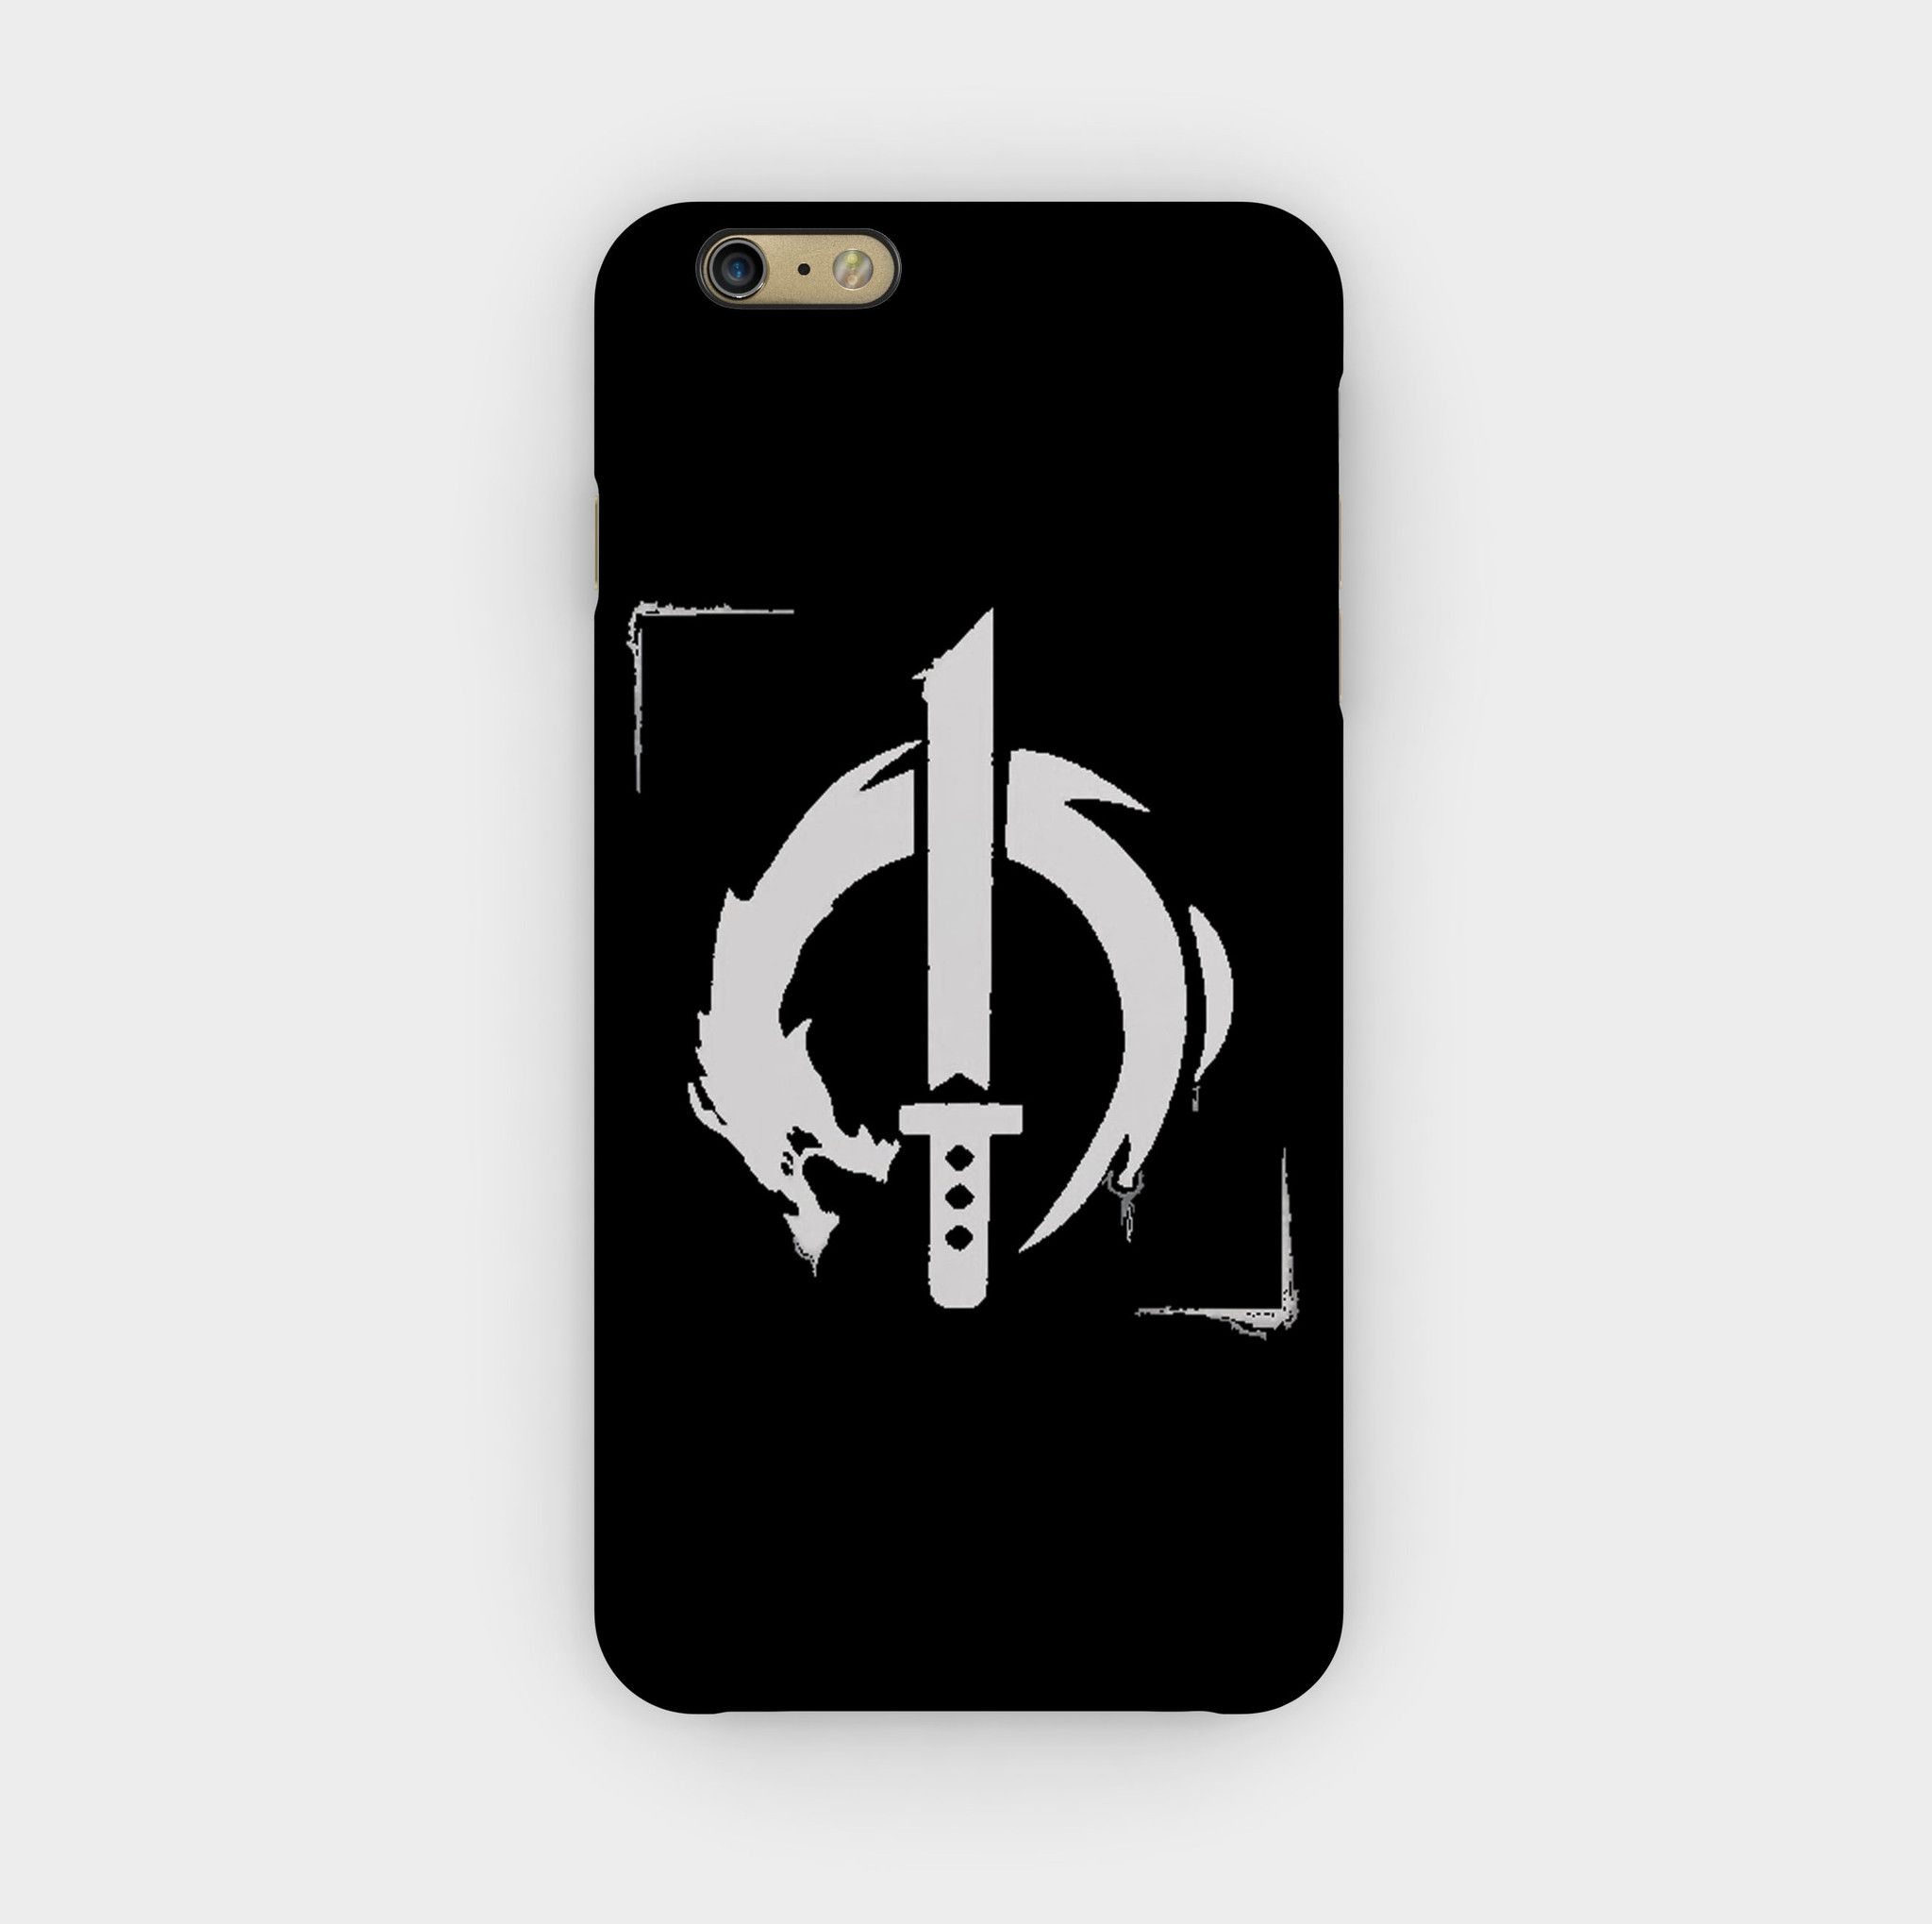 factory authentic 8b3a8 81569 Buy Overwatch Genji iPhone 6 / 6S Plus Case #iphonecase #iphone6case ...